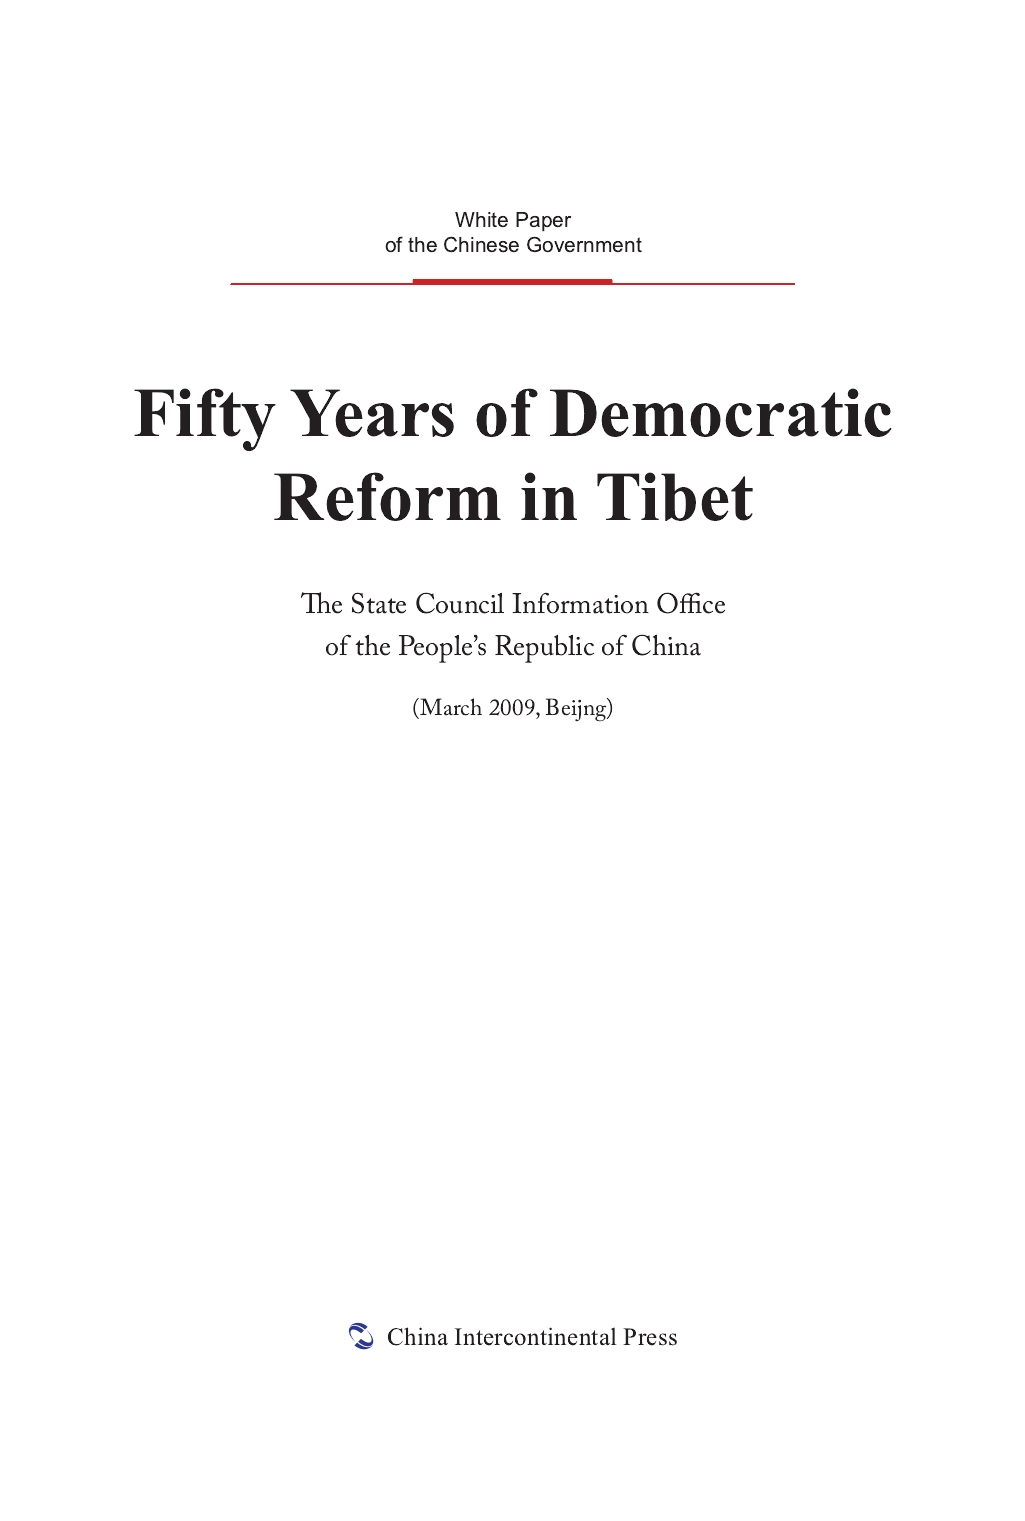 Fifty Years of Democratic Reform in Tibet